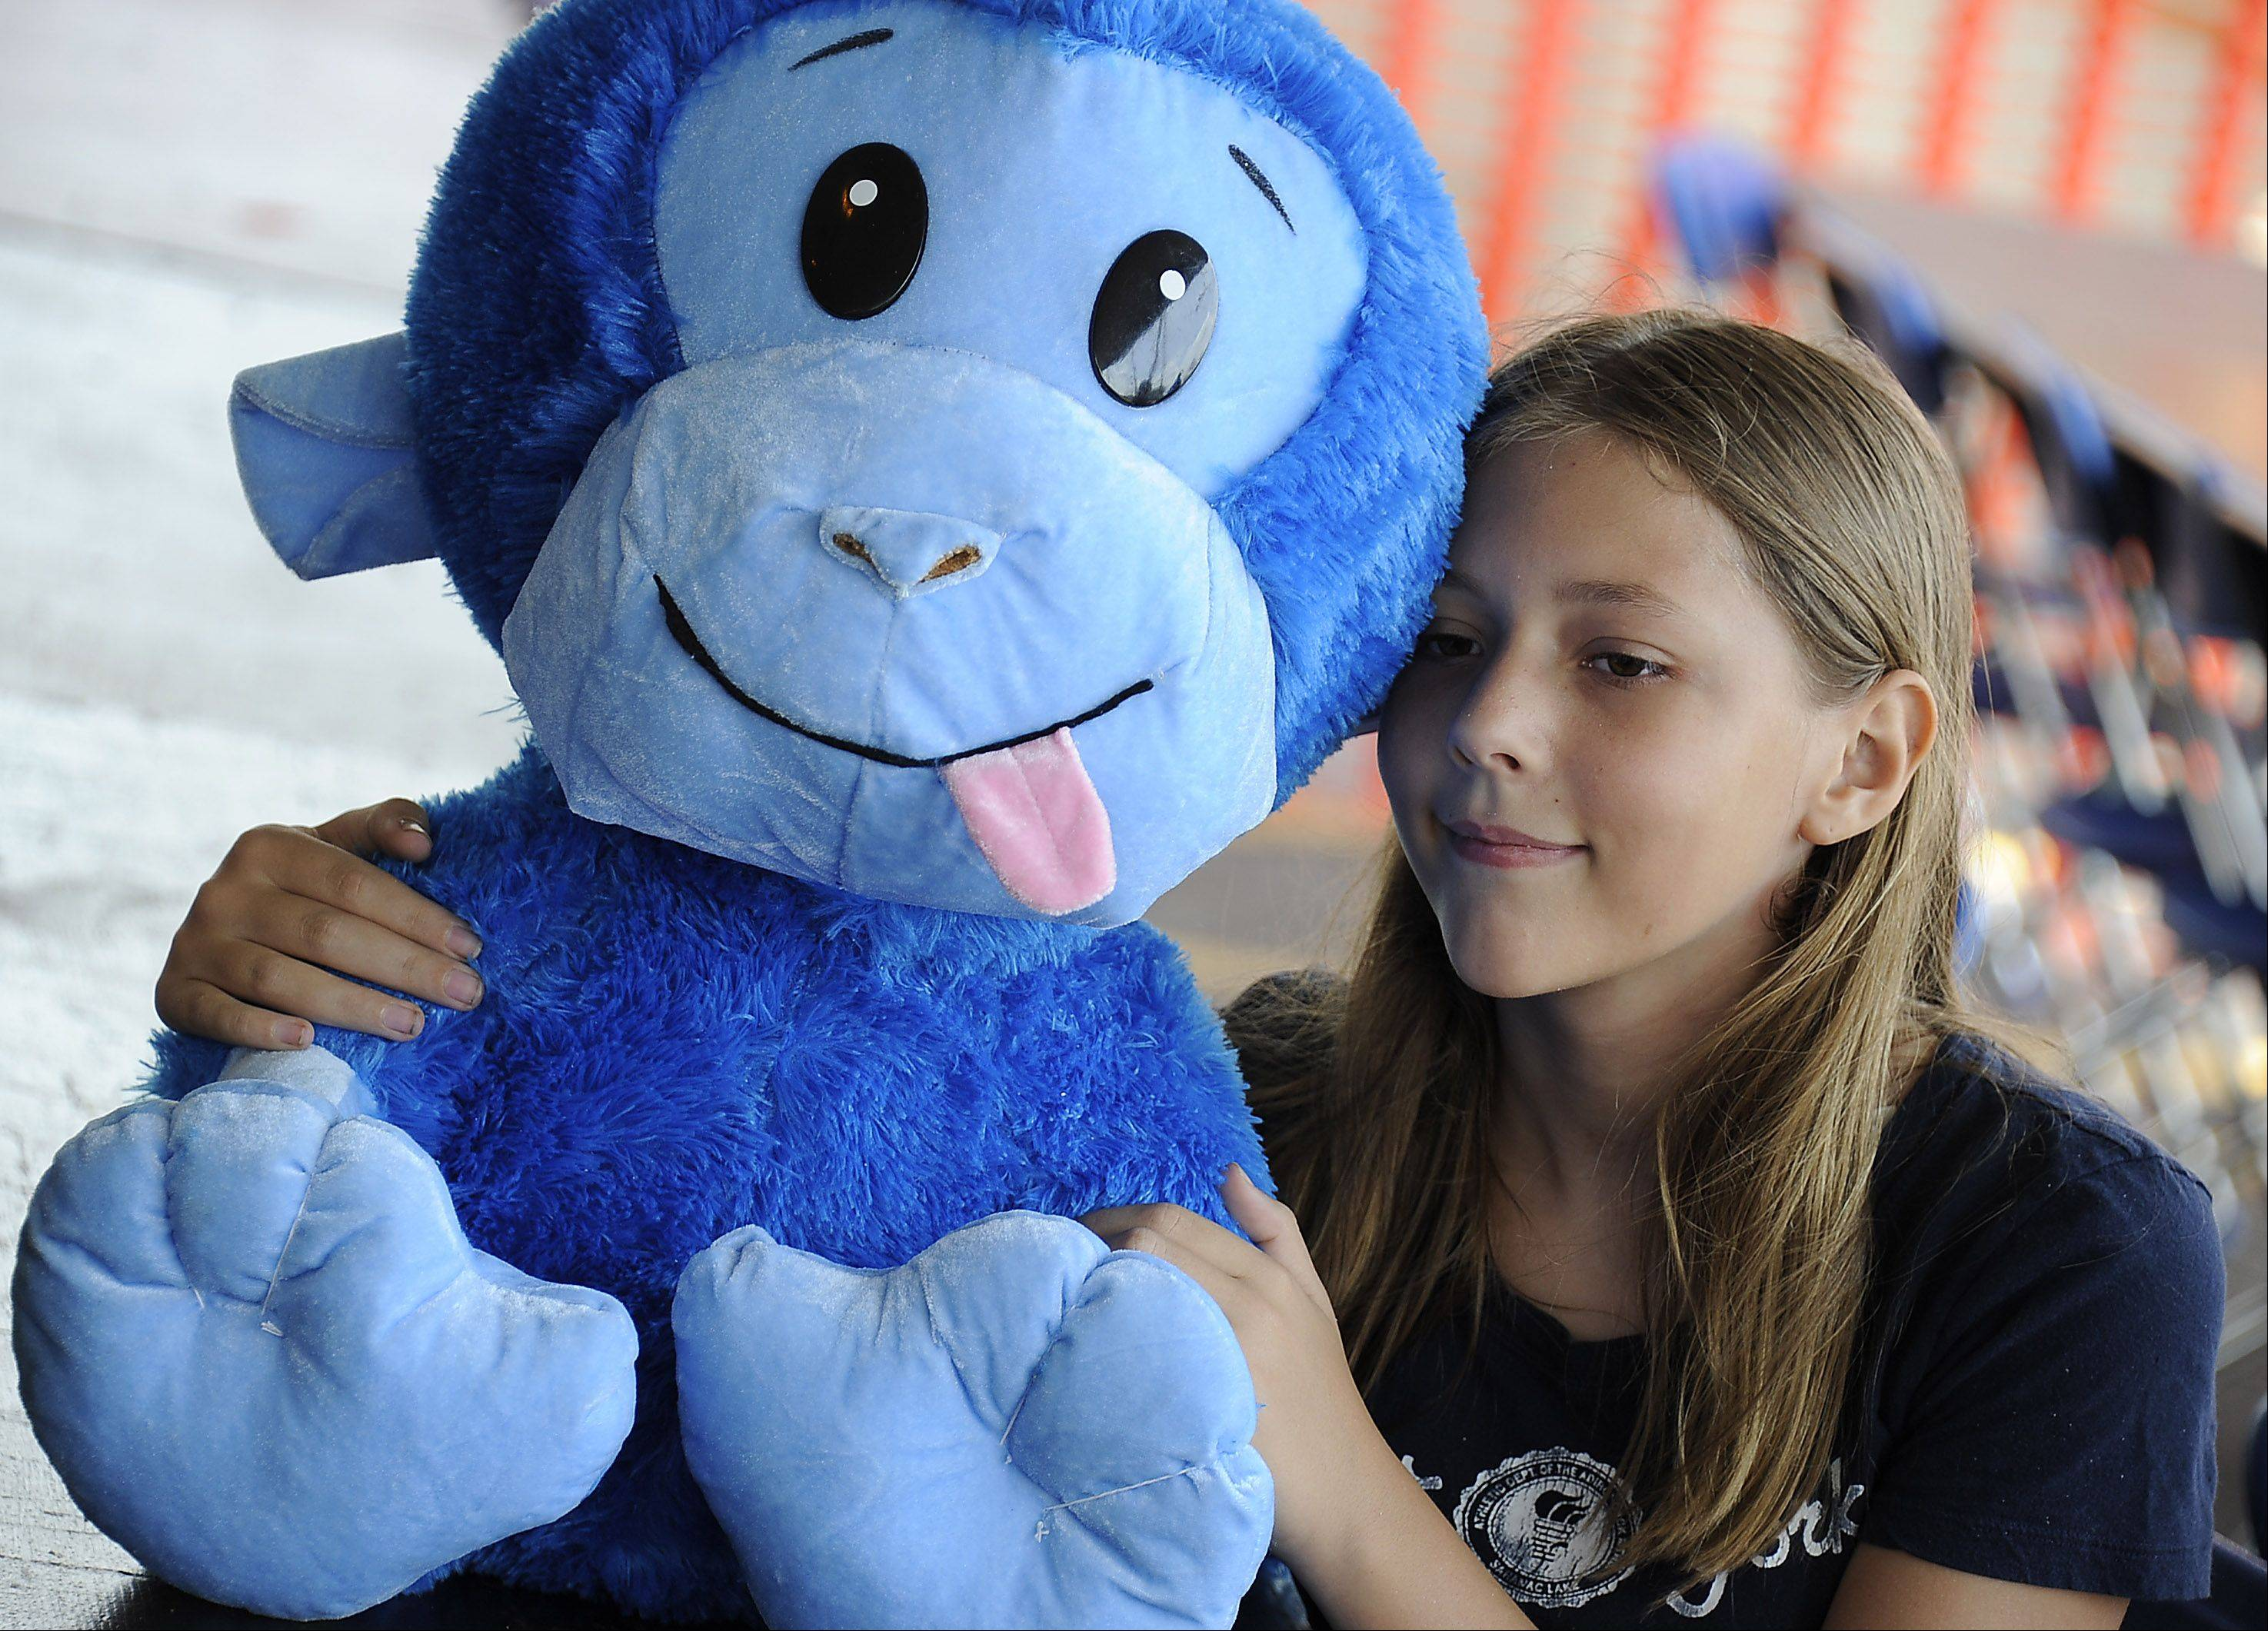 Frontier Days festivities kicks off on the Fourth of July great for Amanda Olsen, 13, of Arlington Heights who won her stuffed monkey at a basketball game.